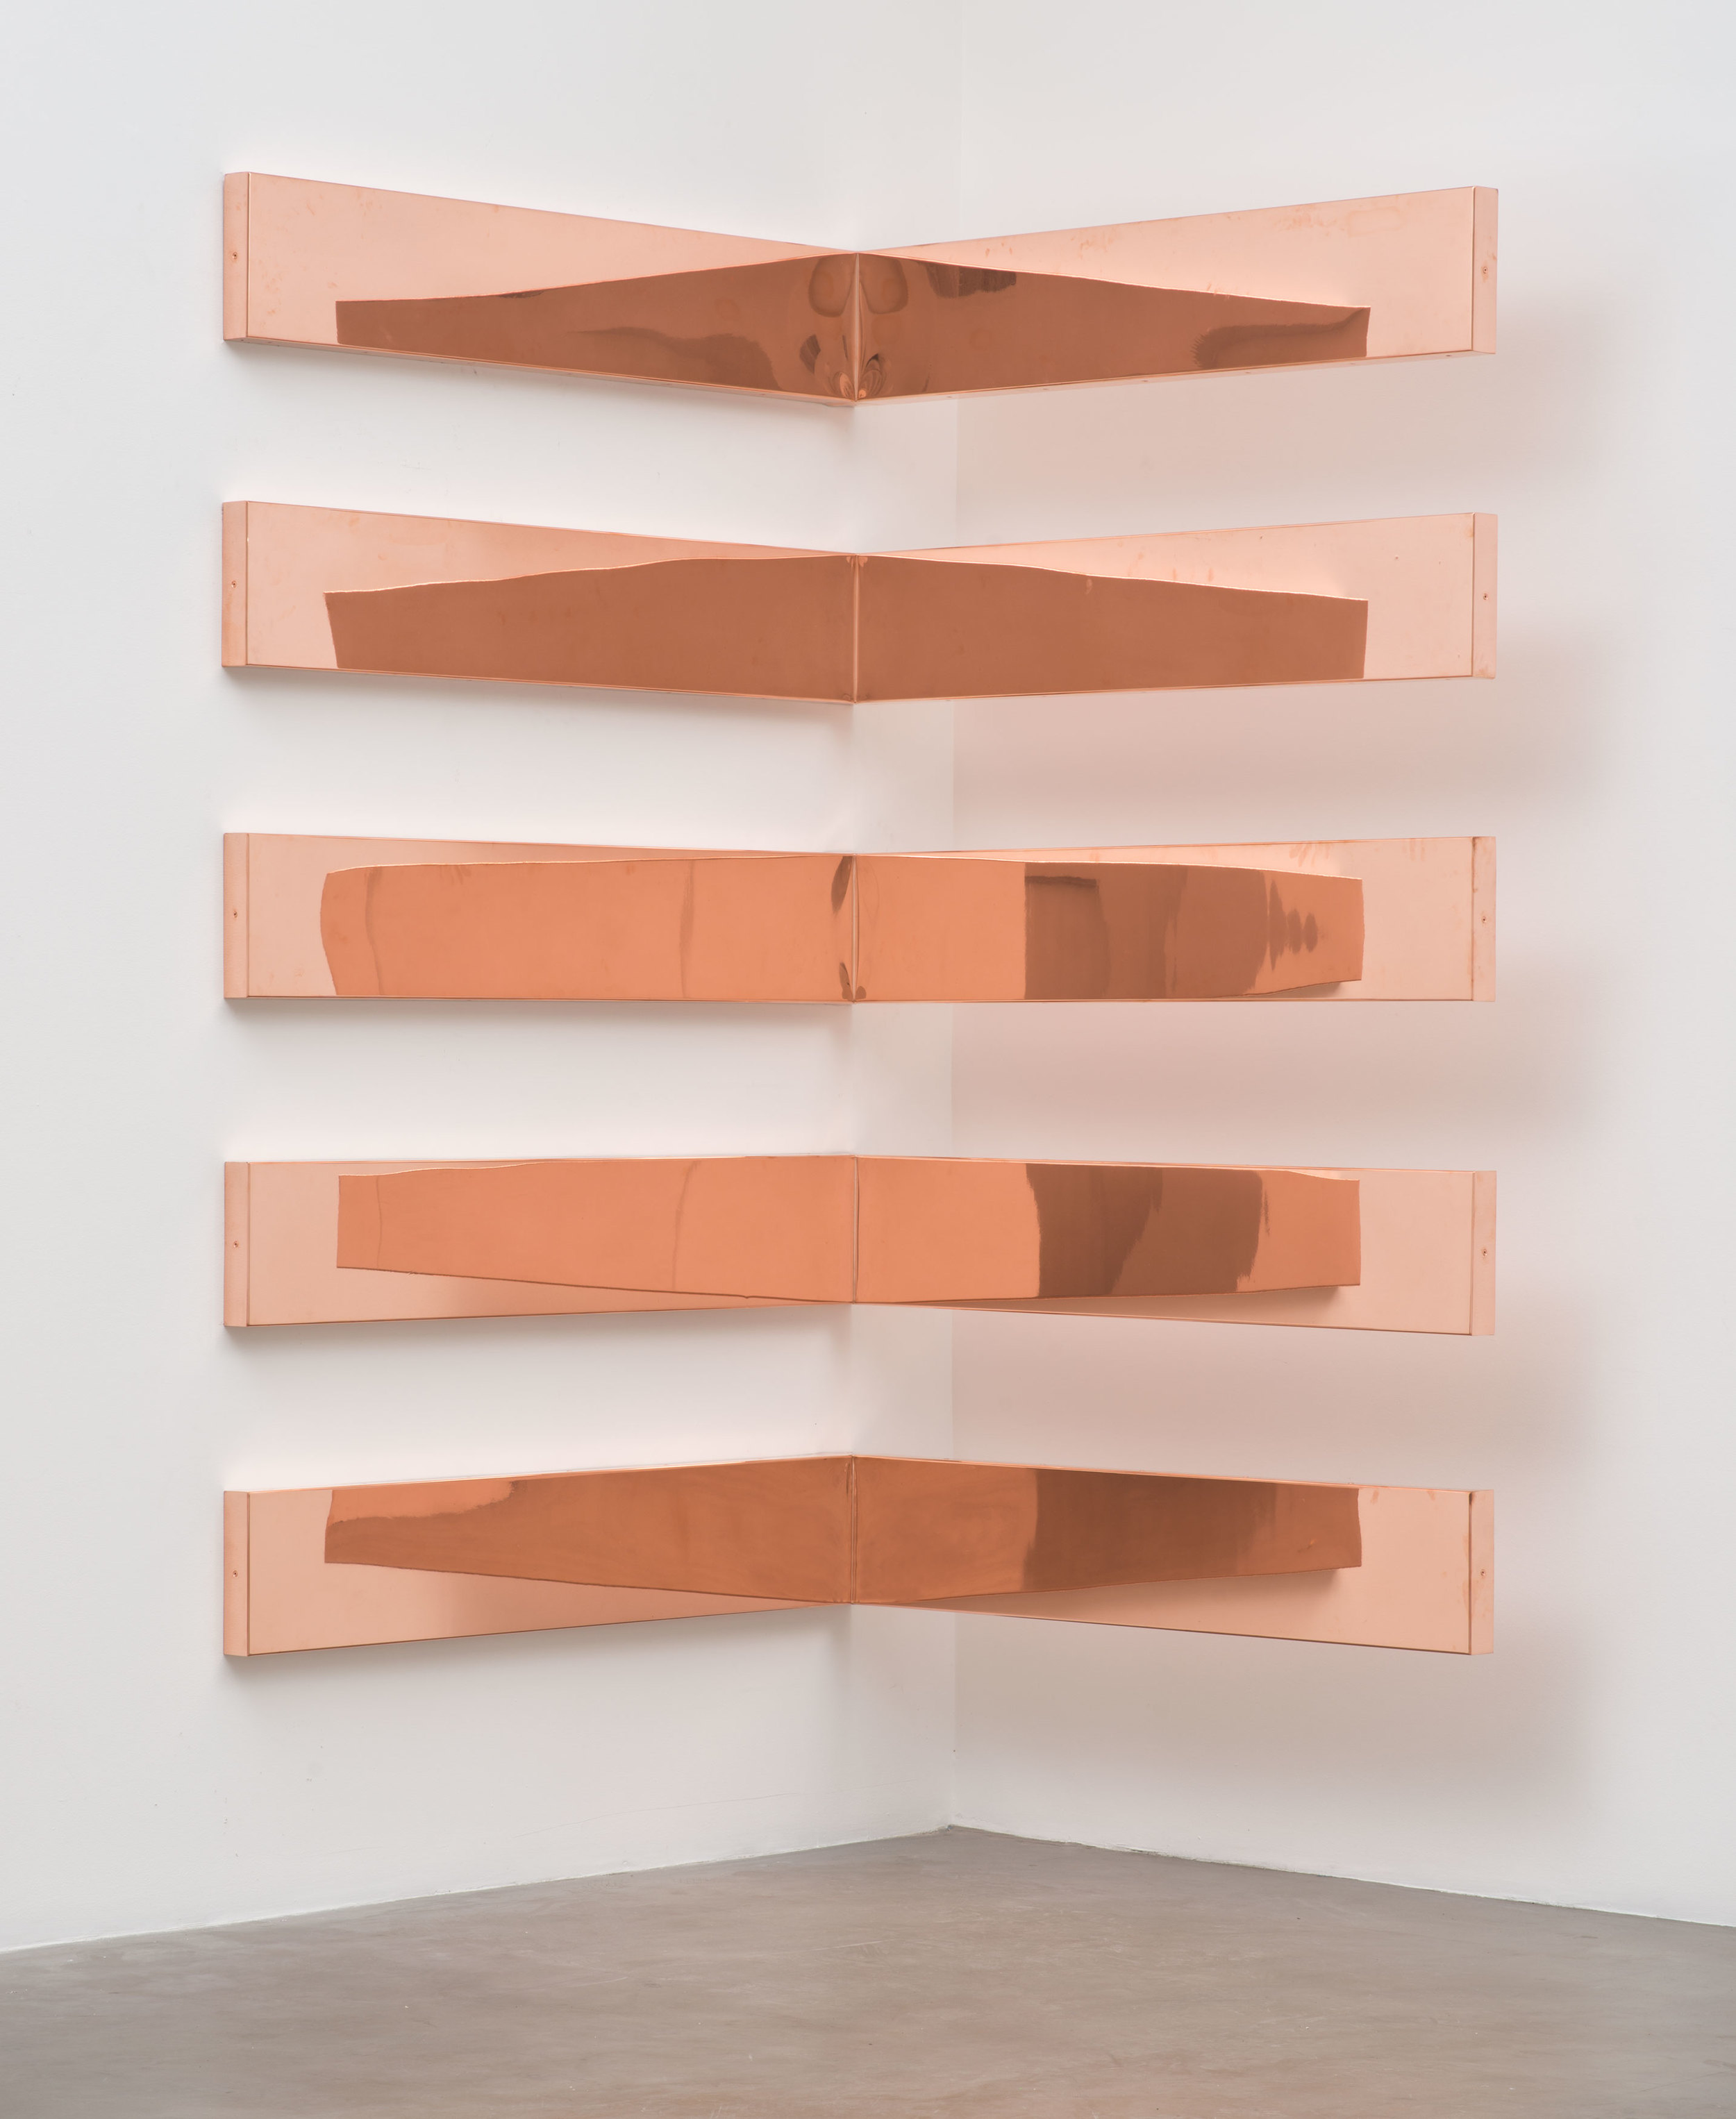 """Copper Surrogate (60"""" x 120"""" 48 ounce C11000 Copper Alloy, 90º Bend, 60""""Bisection/5 Sections: December 4/December 7, 2014, Miami Beach, Florida, February 10–12, 2015, Los Angeles, California)    2014–   Polished copper  11 x 60 x 60 inches each, 5 parts   Walid AlBeshti, 2015"""